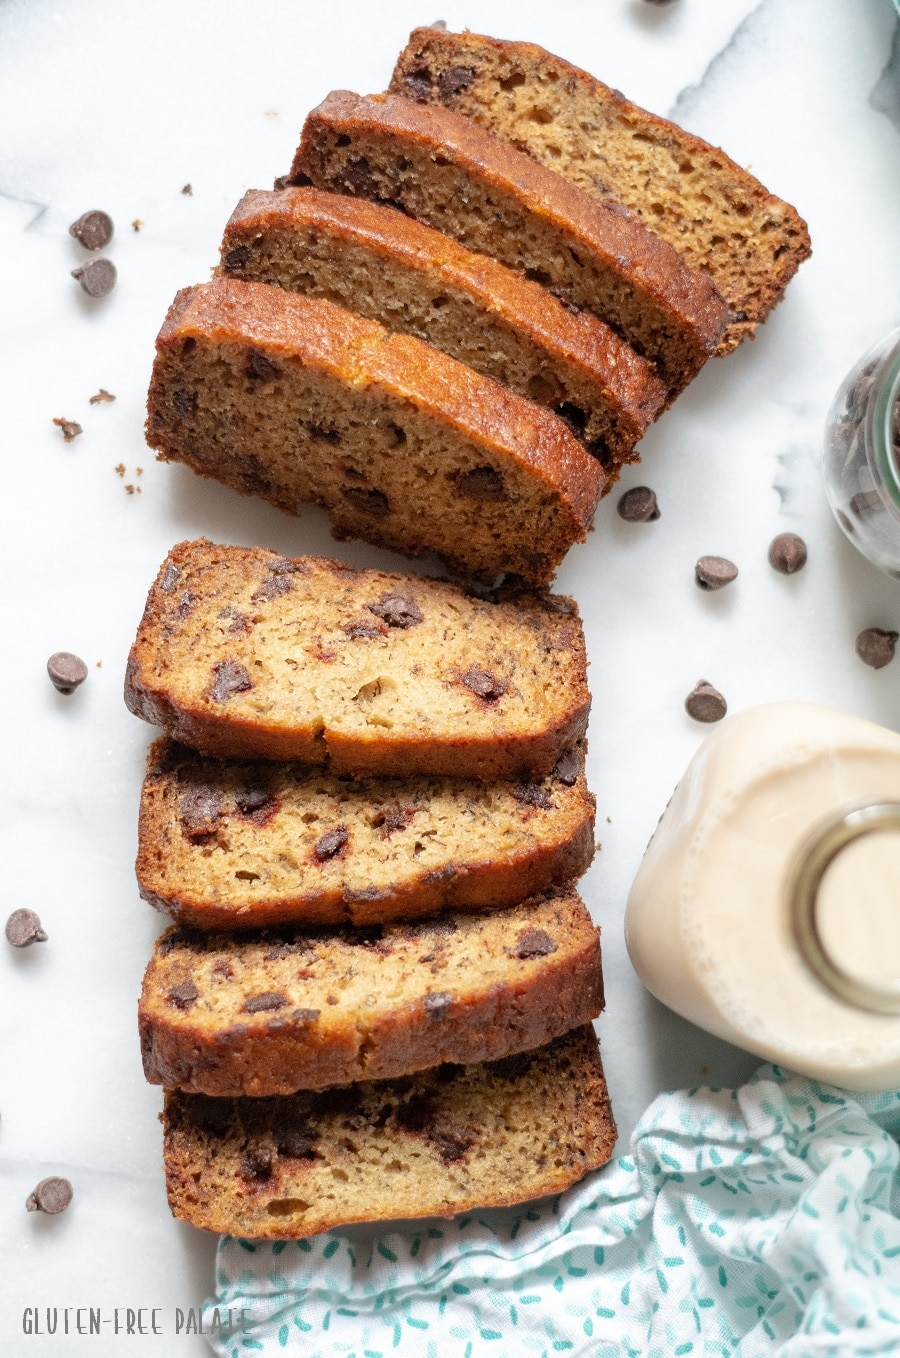 slices of Gluten-Free Banana Bread with scattered chocolate chips and a jar of milk